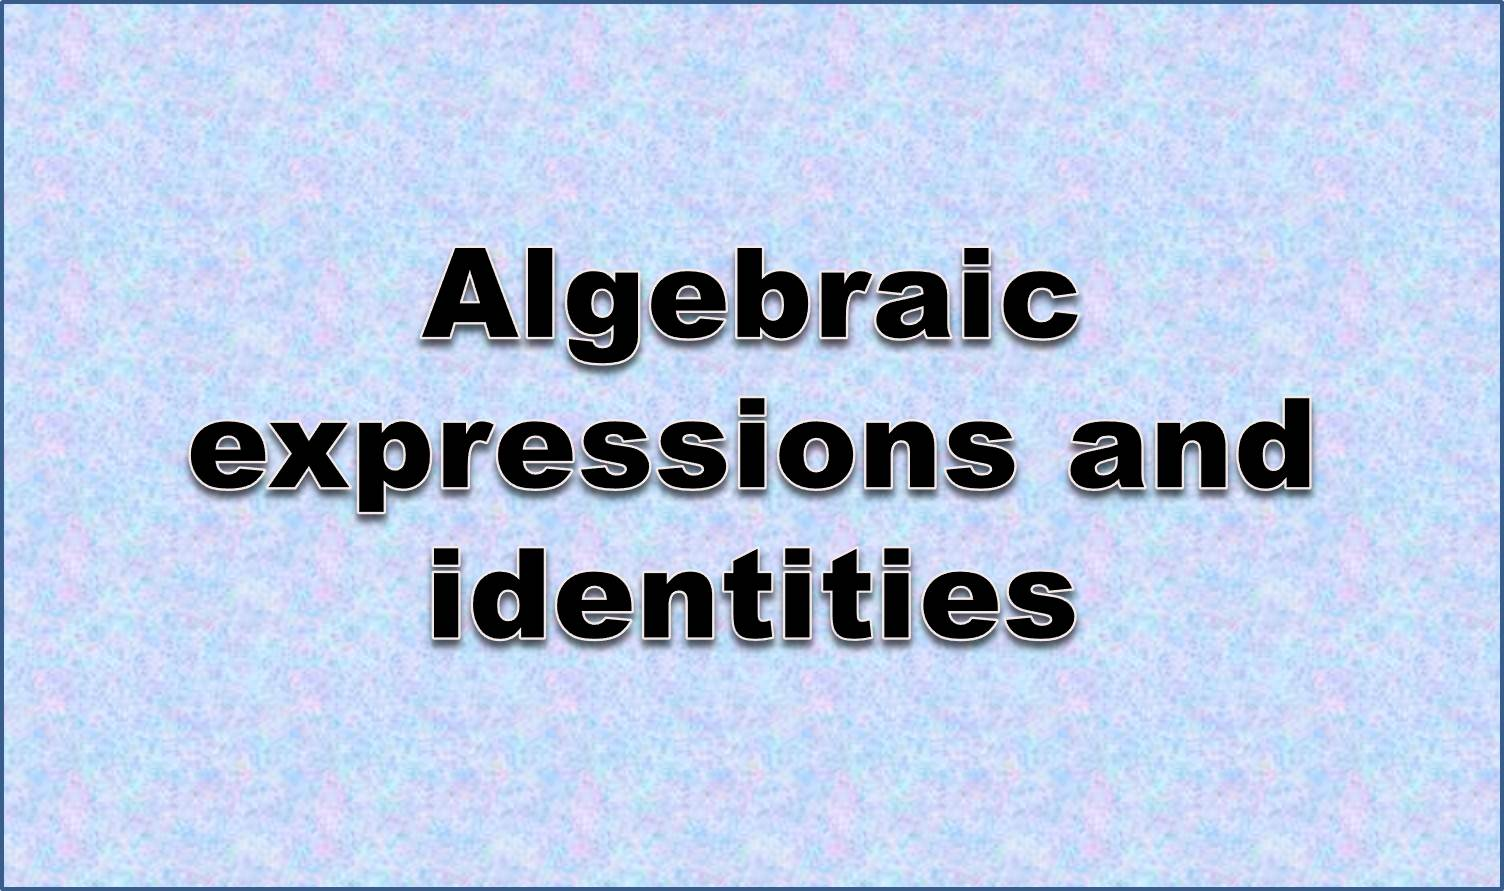 http://study.aisectonline.com/images/More examples of special products.jpg